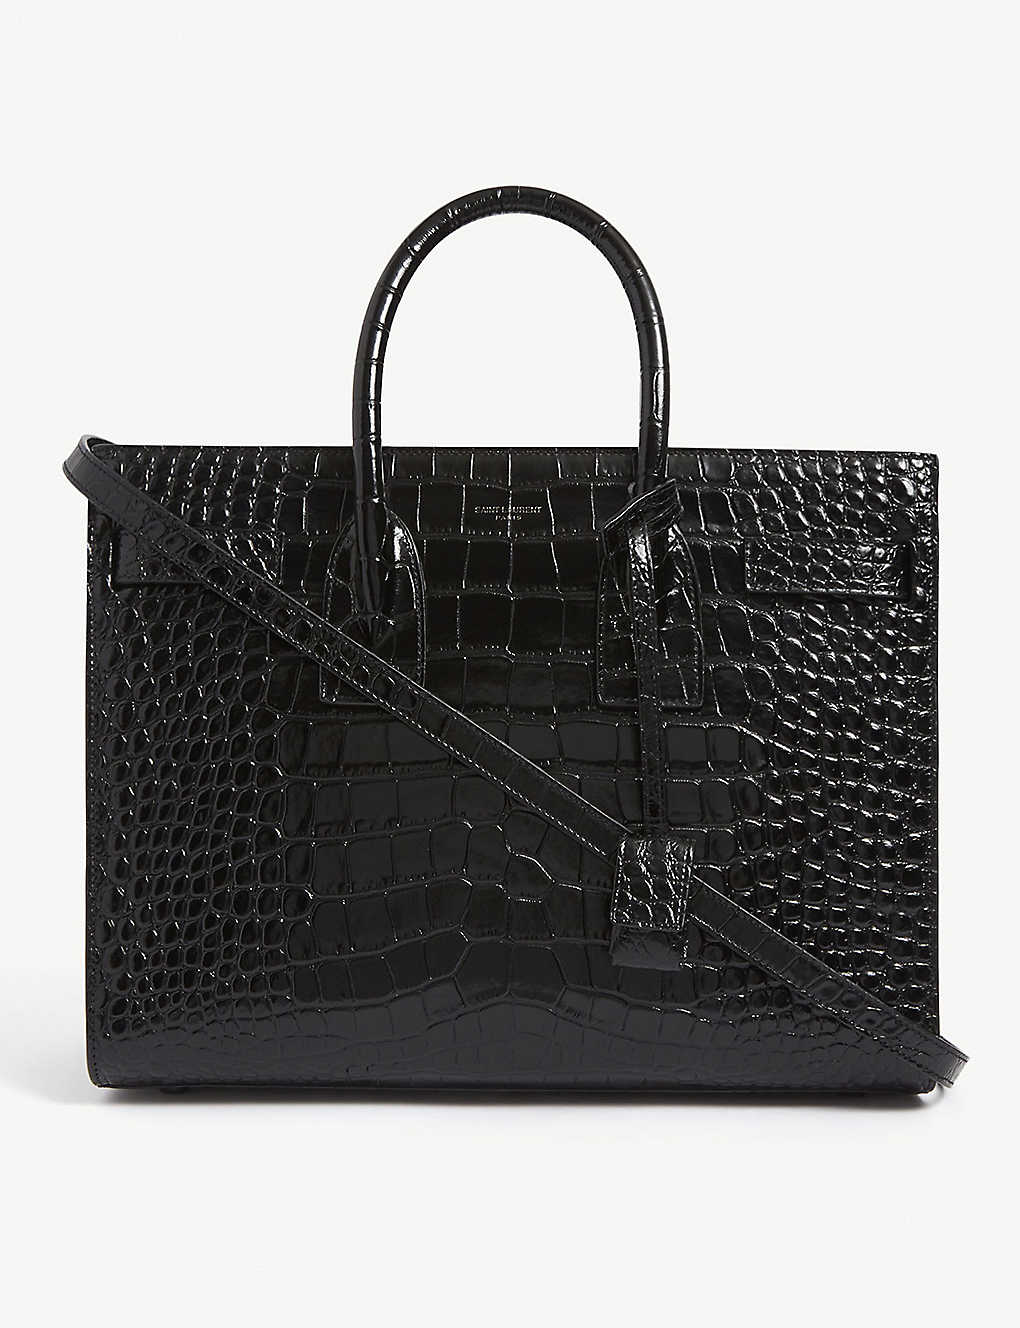 SAINT LAURENT: Sac de Jour croc-embossed leather tote